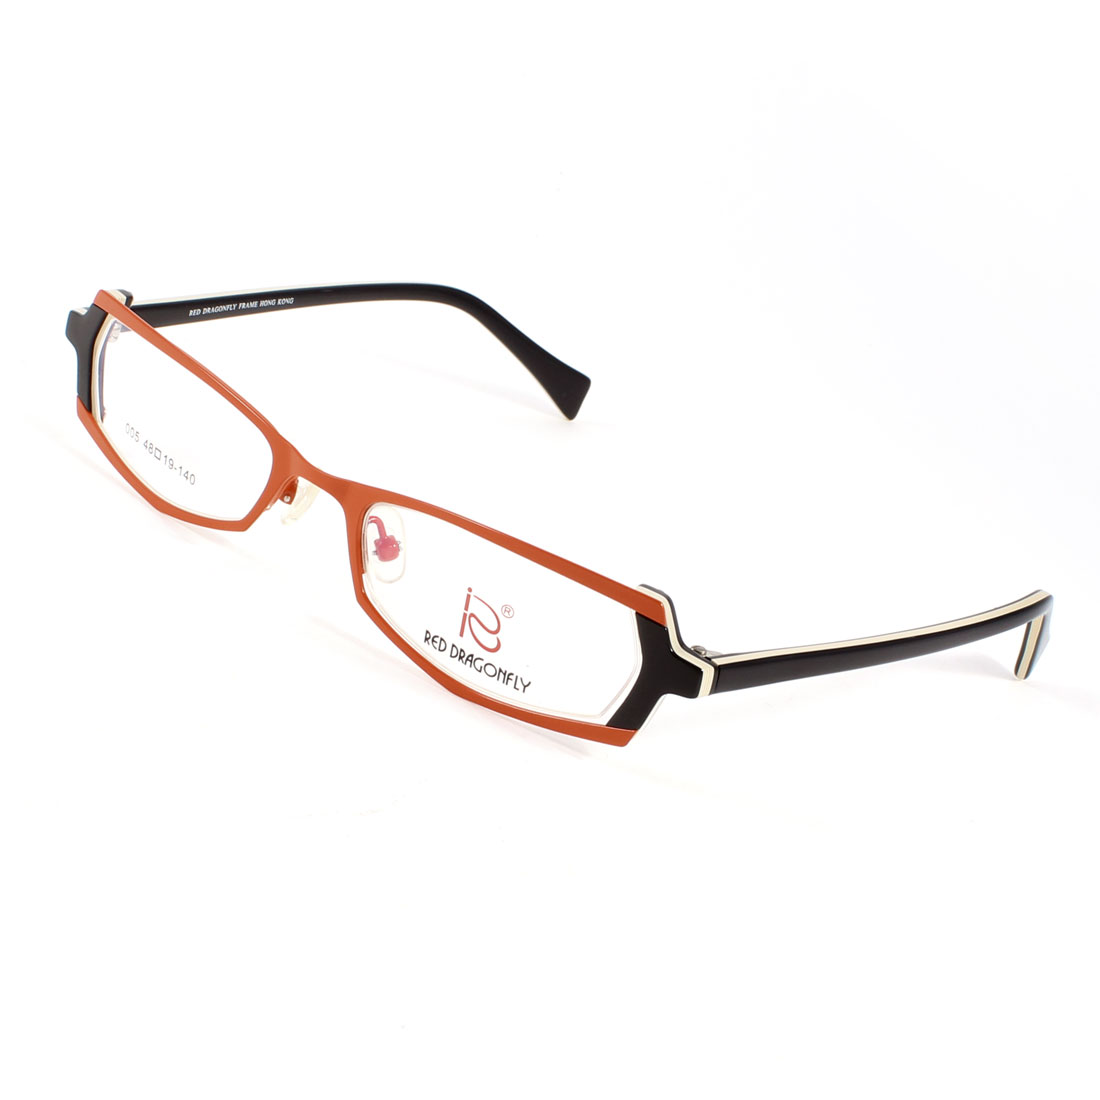 Woman Plastic Rectangle Rim Black Arm Nose Pads MC Lens Plano Glasses Orange